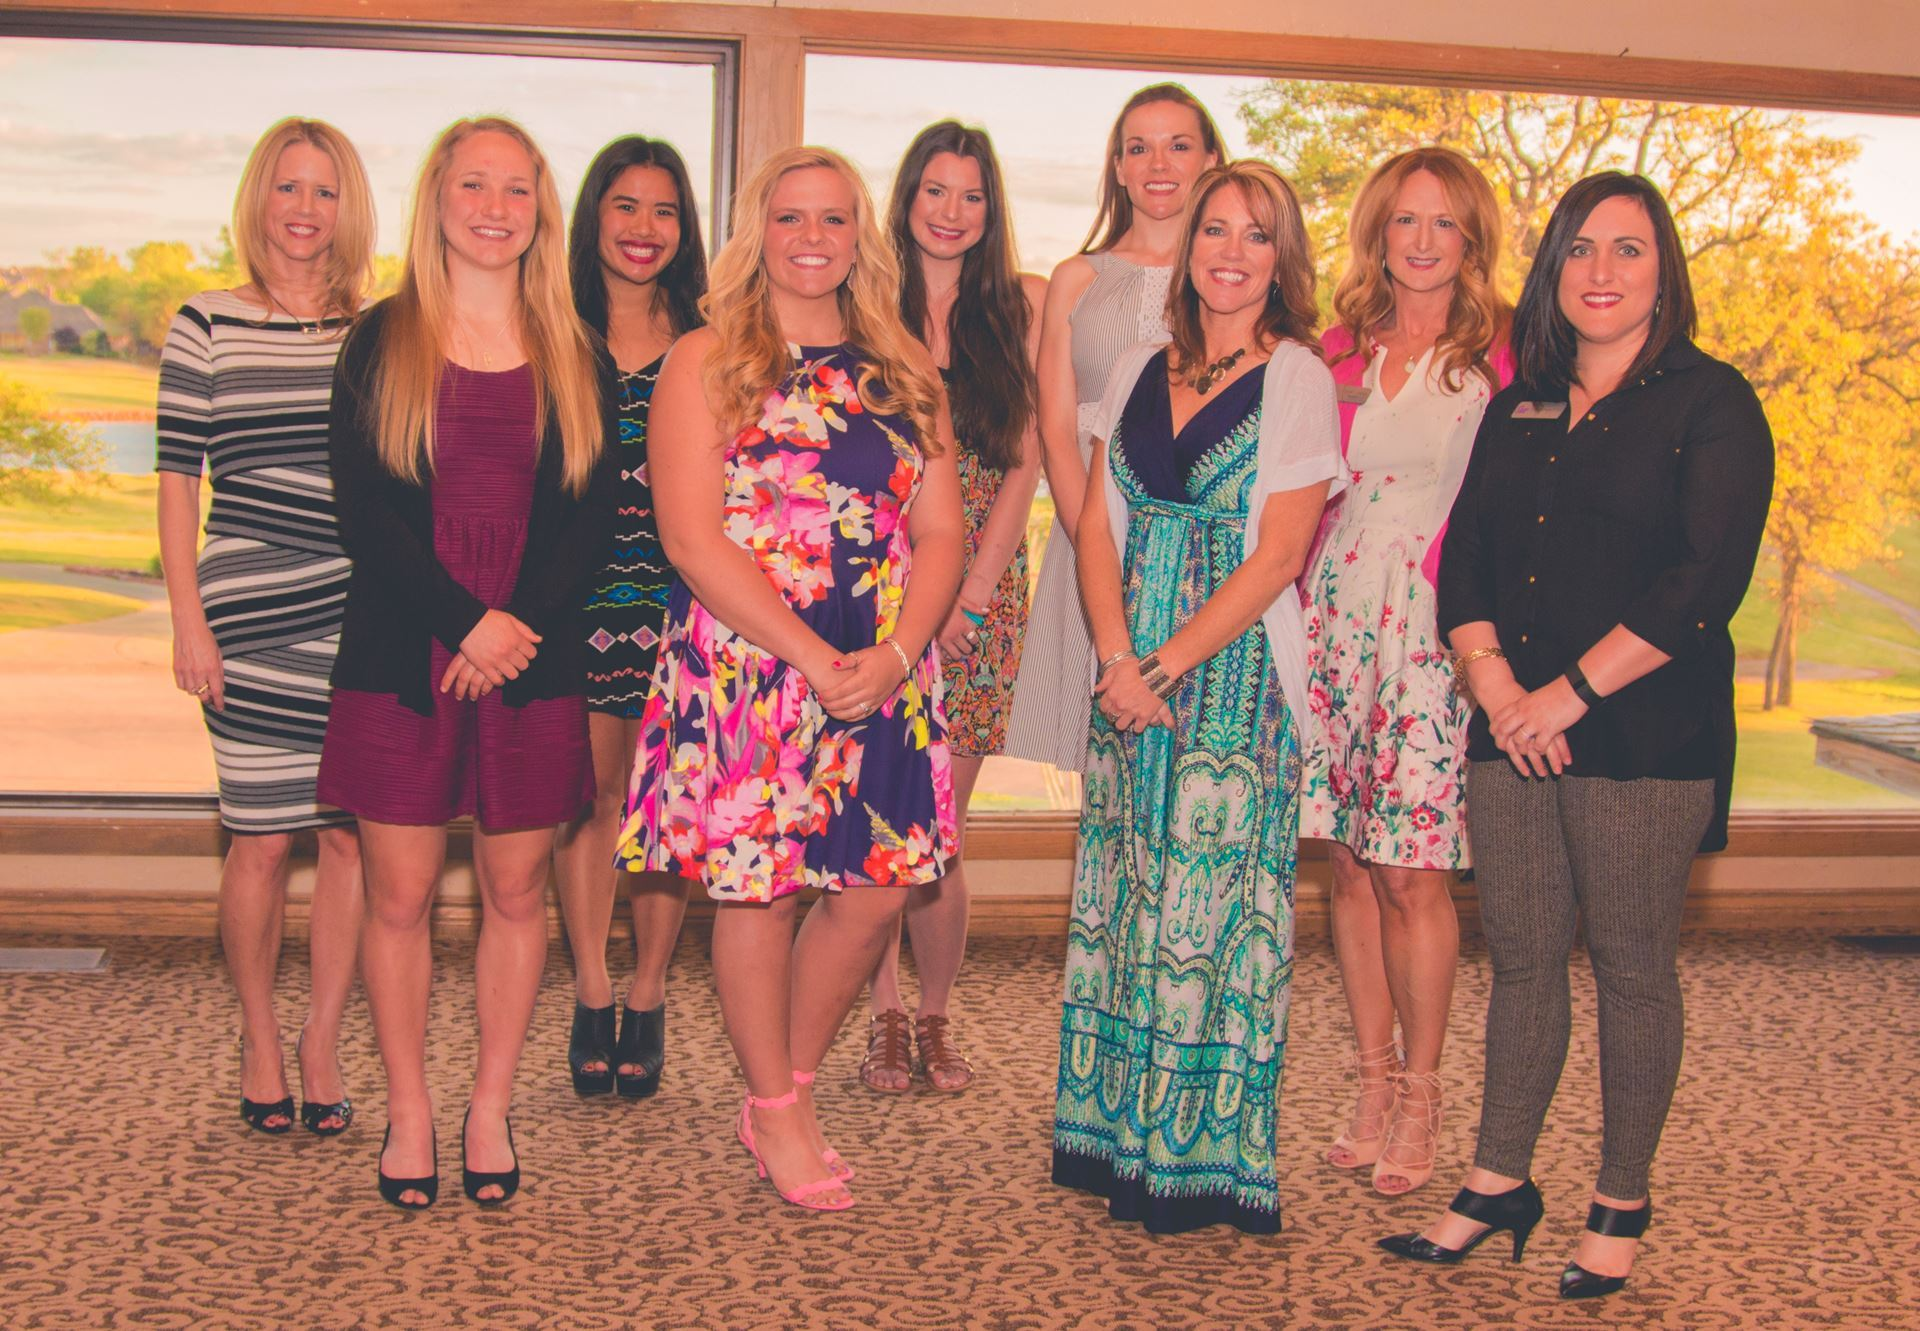 edmond women The edmond women's club (ewc) has announced they are now accepting scholarship applications for the 2017-2018 year there are four applicant categories: high school graduating seniors, high school graduating seniors.